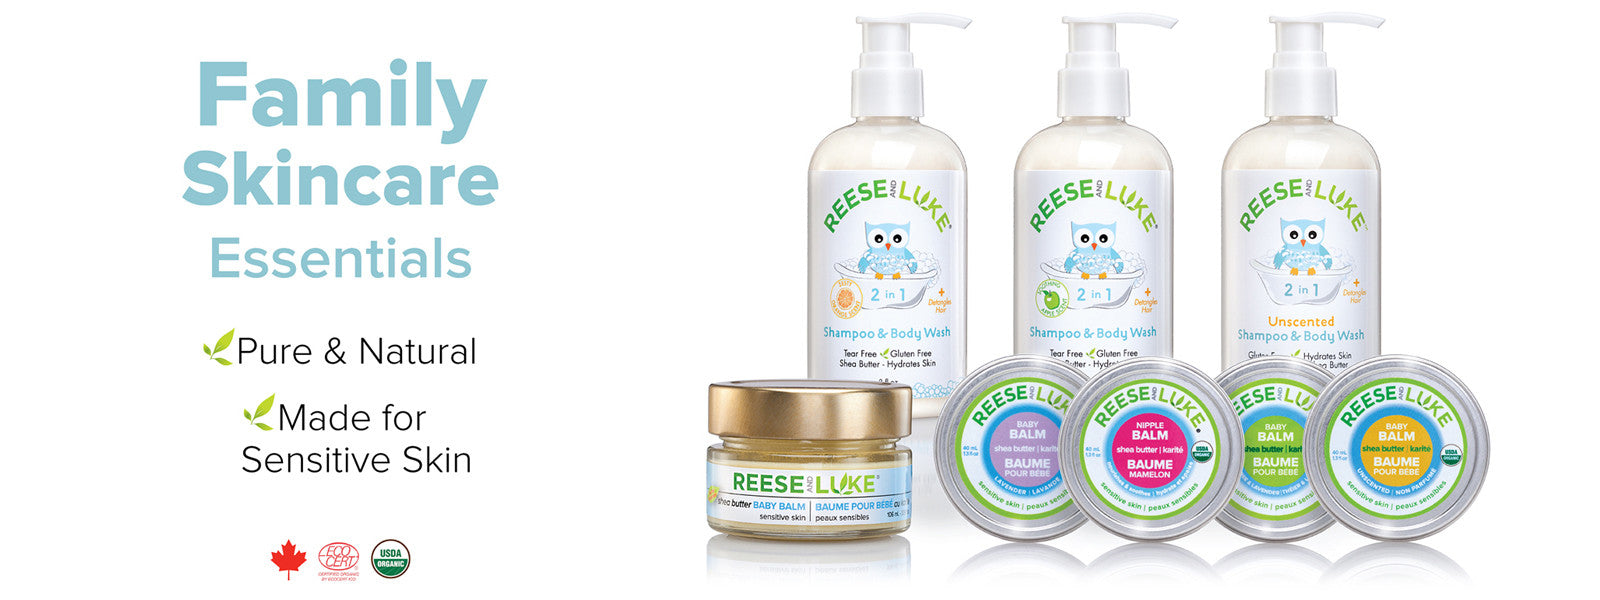 Family Skin Care Essentials - Pure & Natural - Shea Butter Balm, Shampoo, and Body Wash